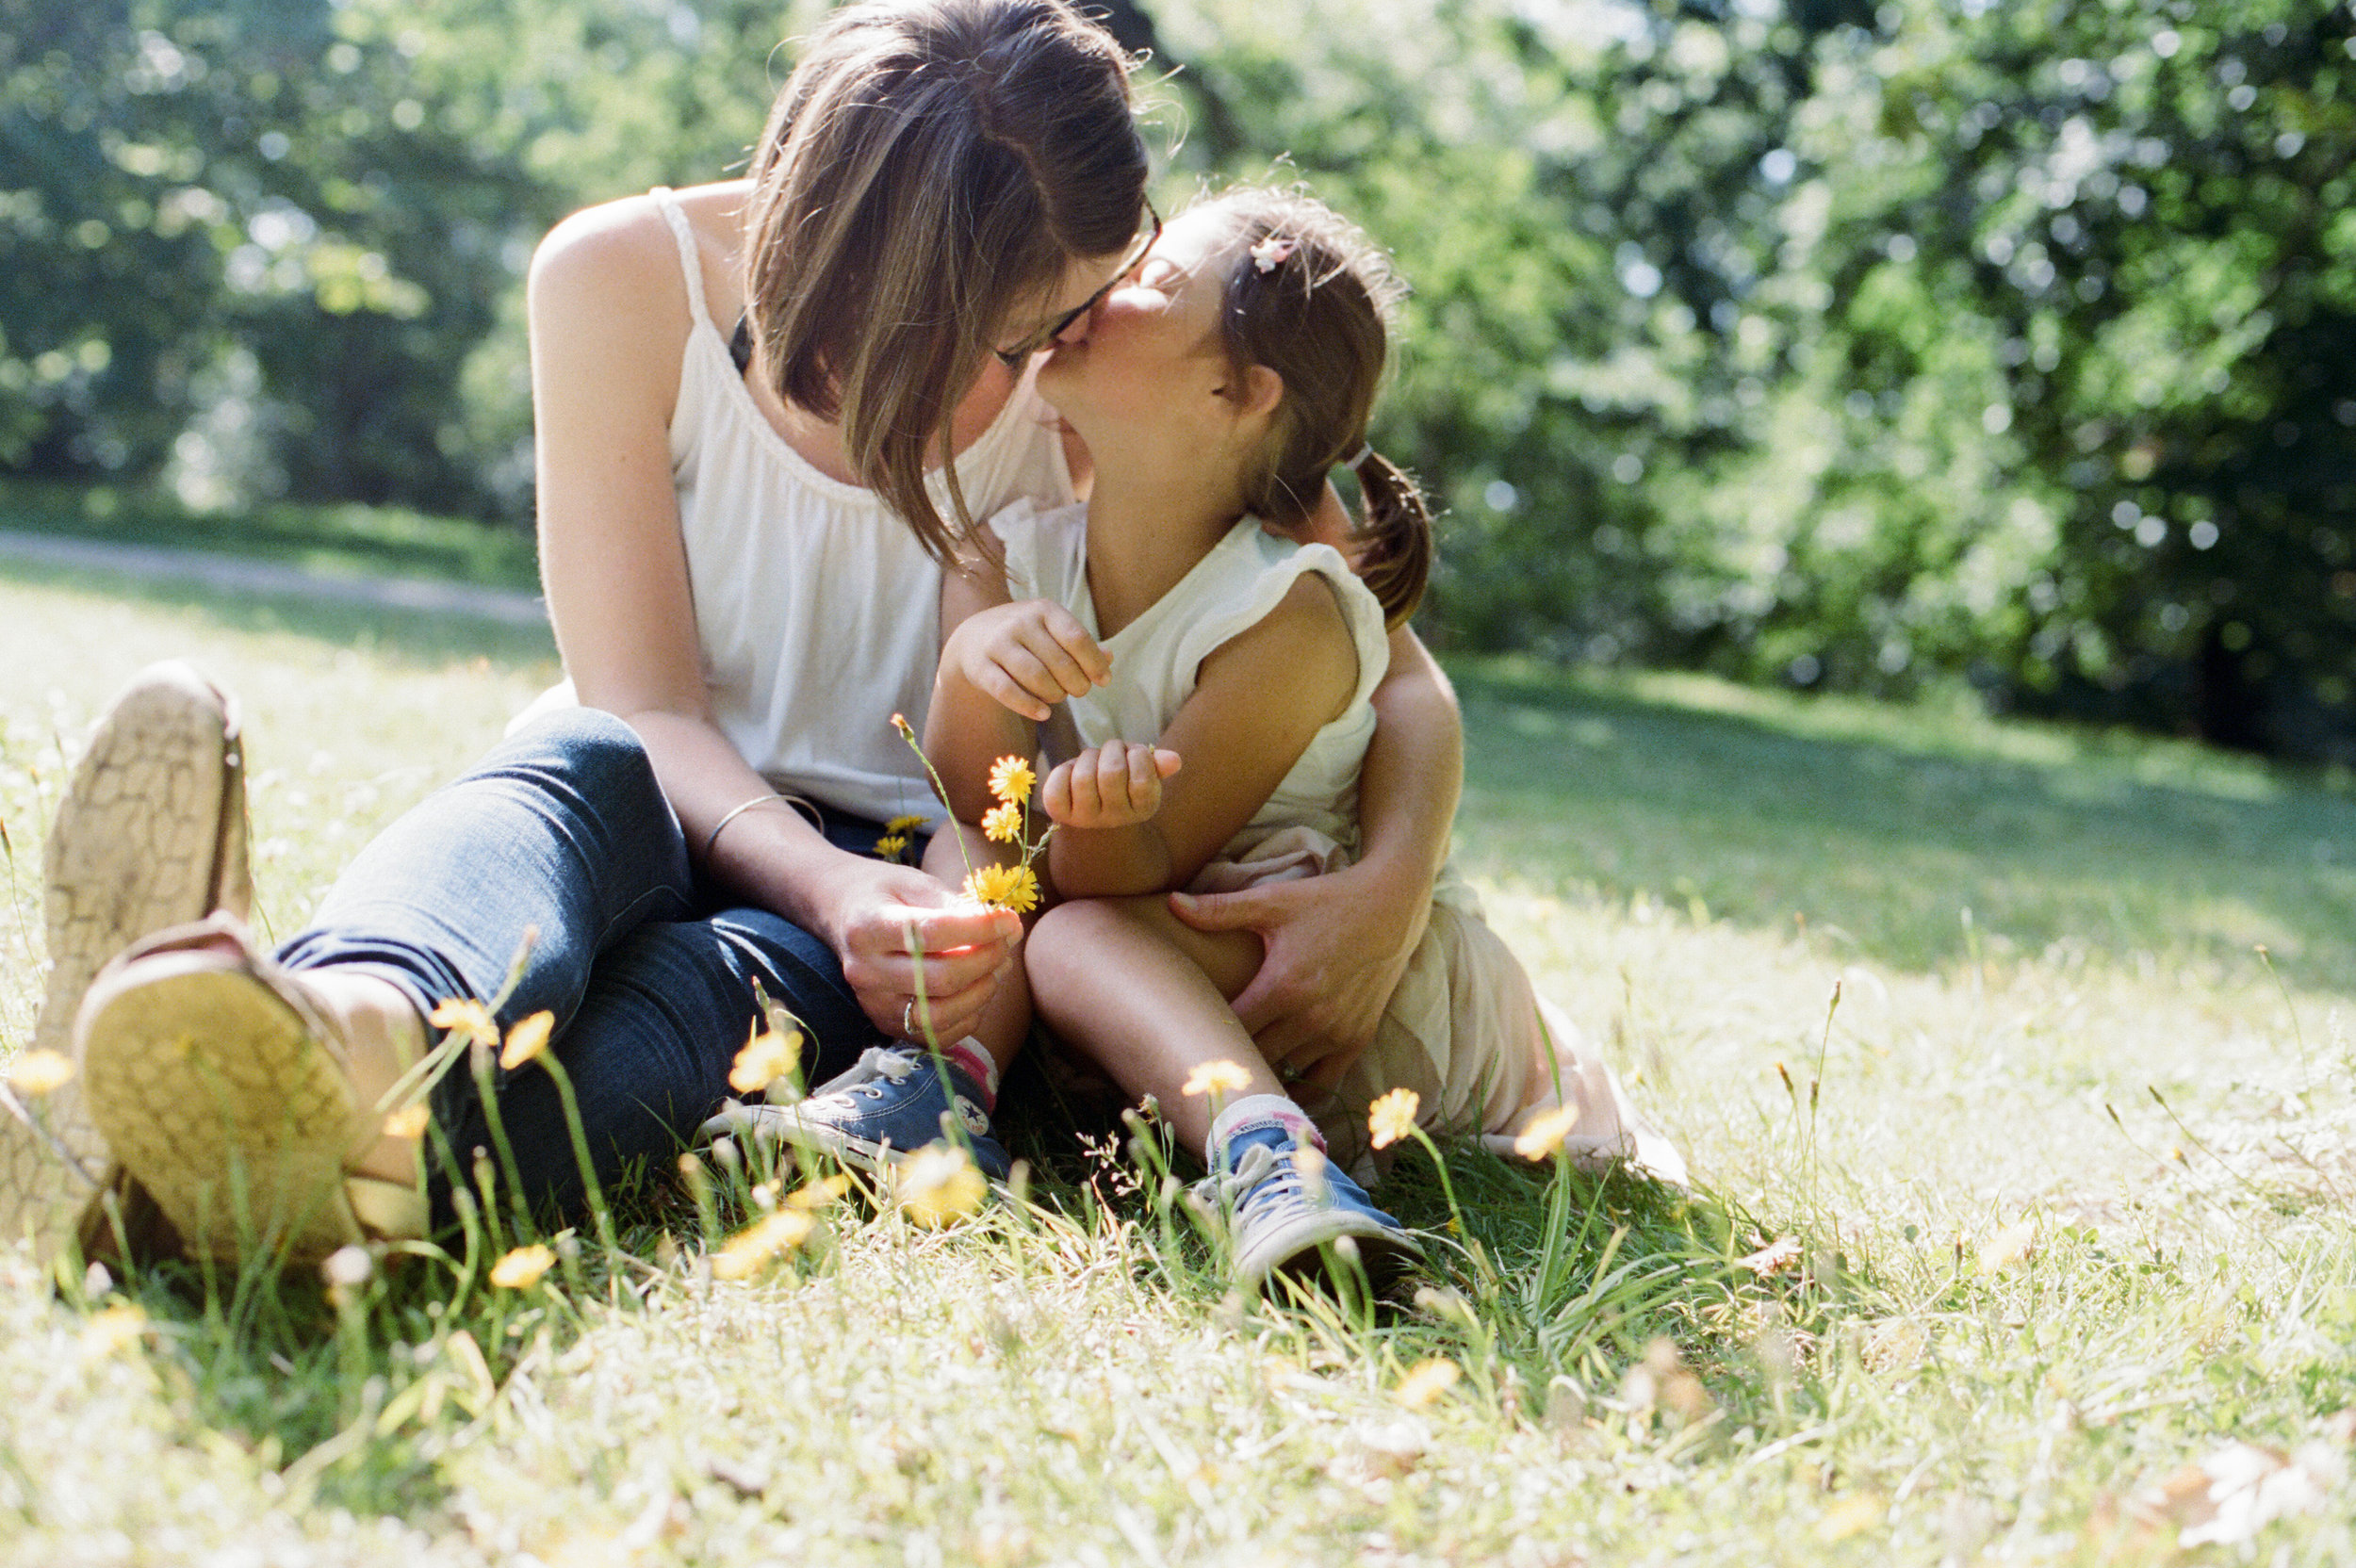 london_surrey_guildford_family_photographer_natural_light_emilywphotography.10.jpg